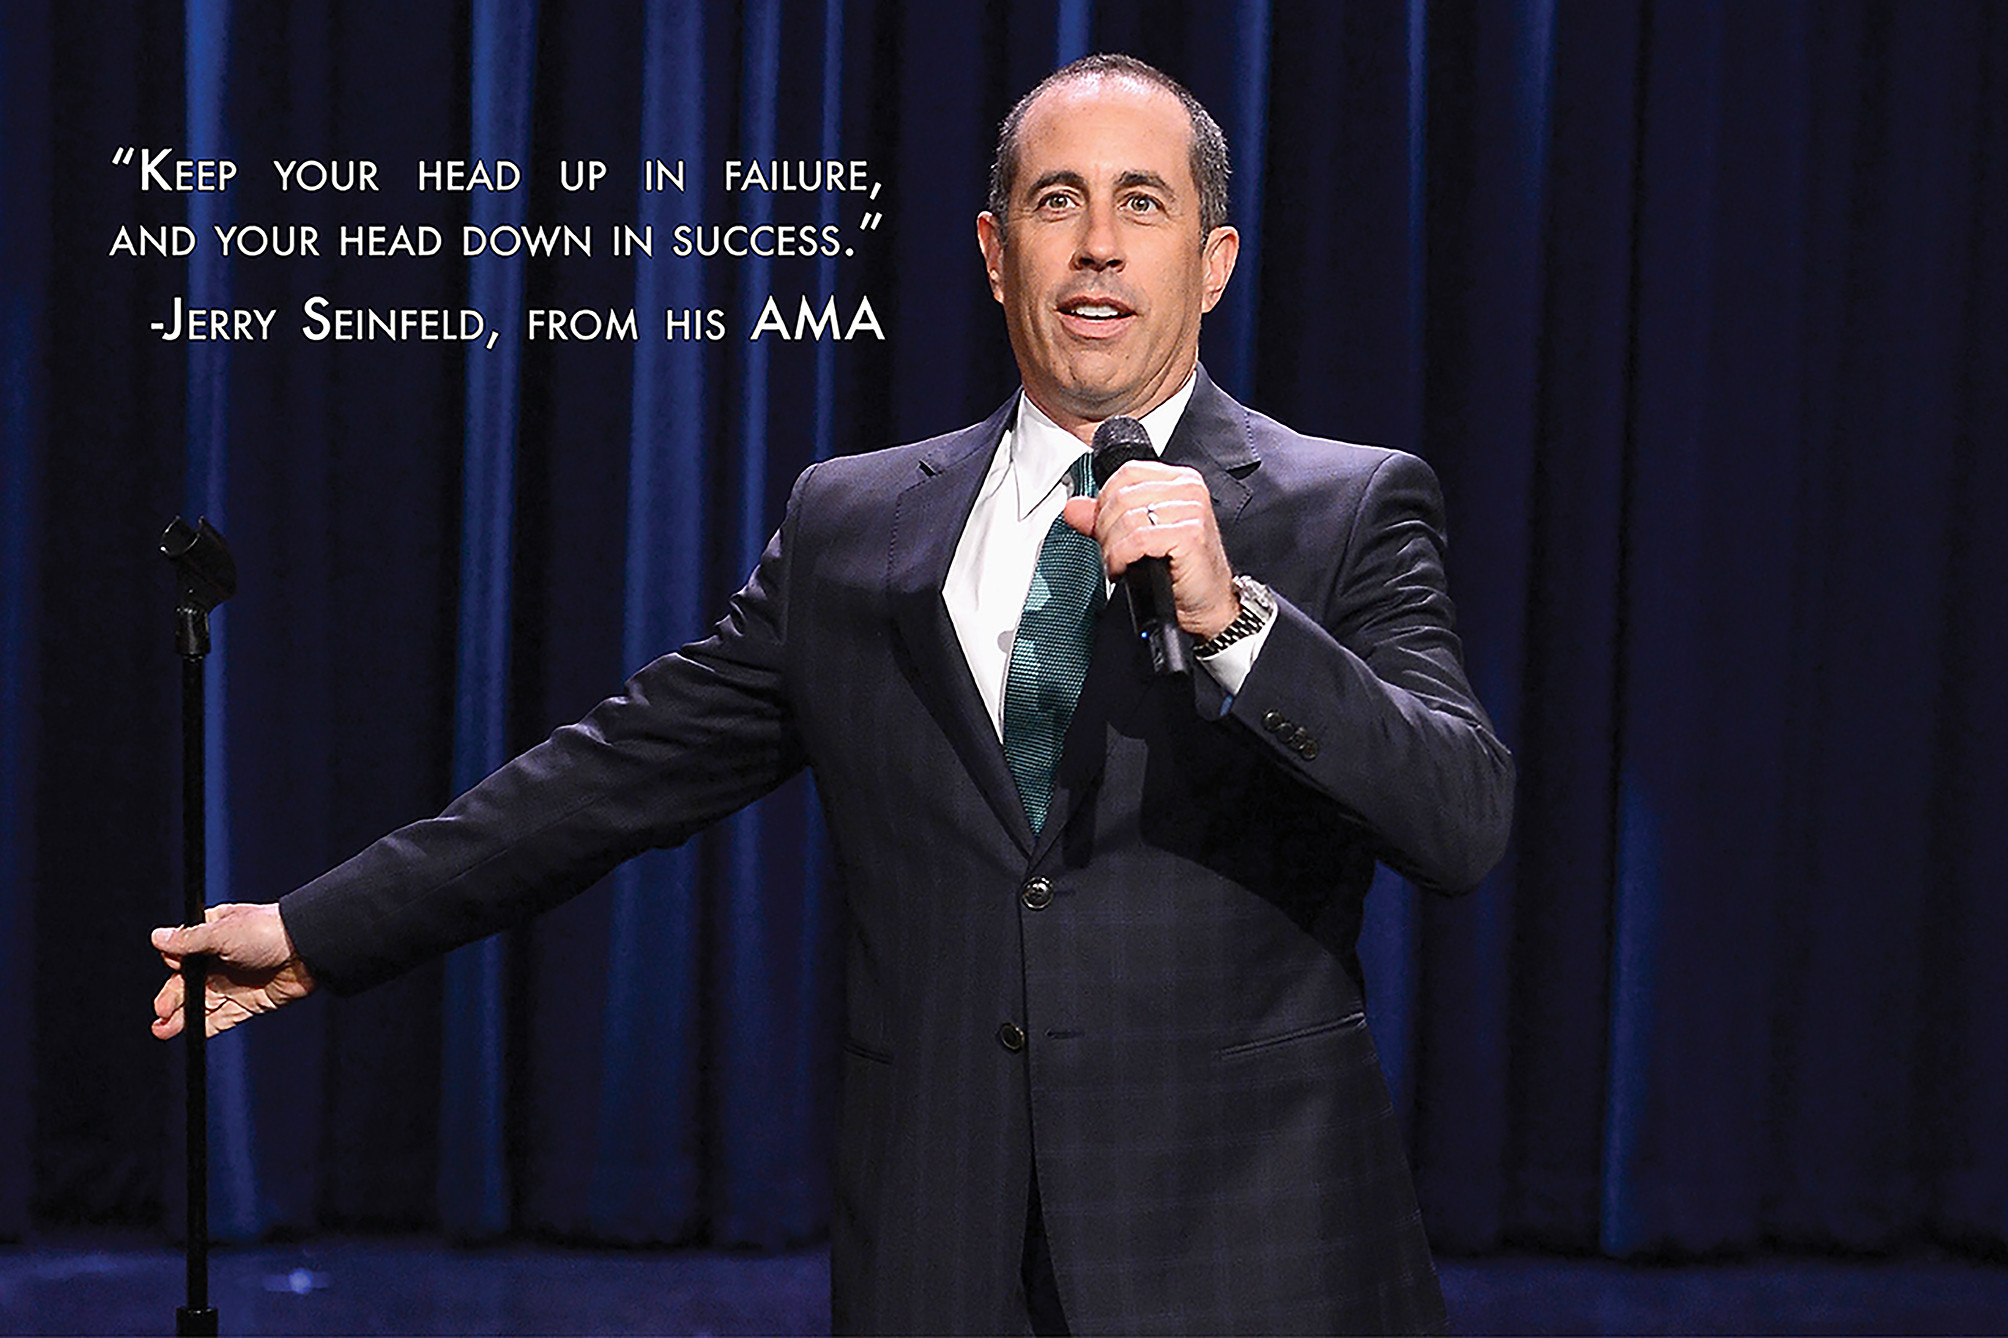 Jerry Seinfeld AMA quote